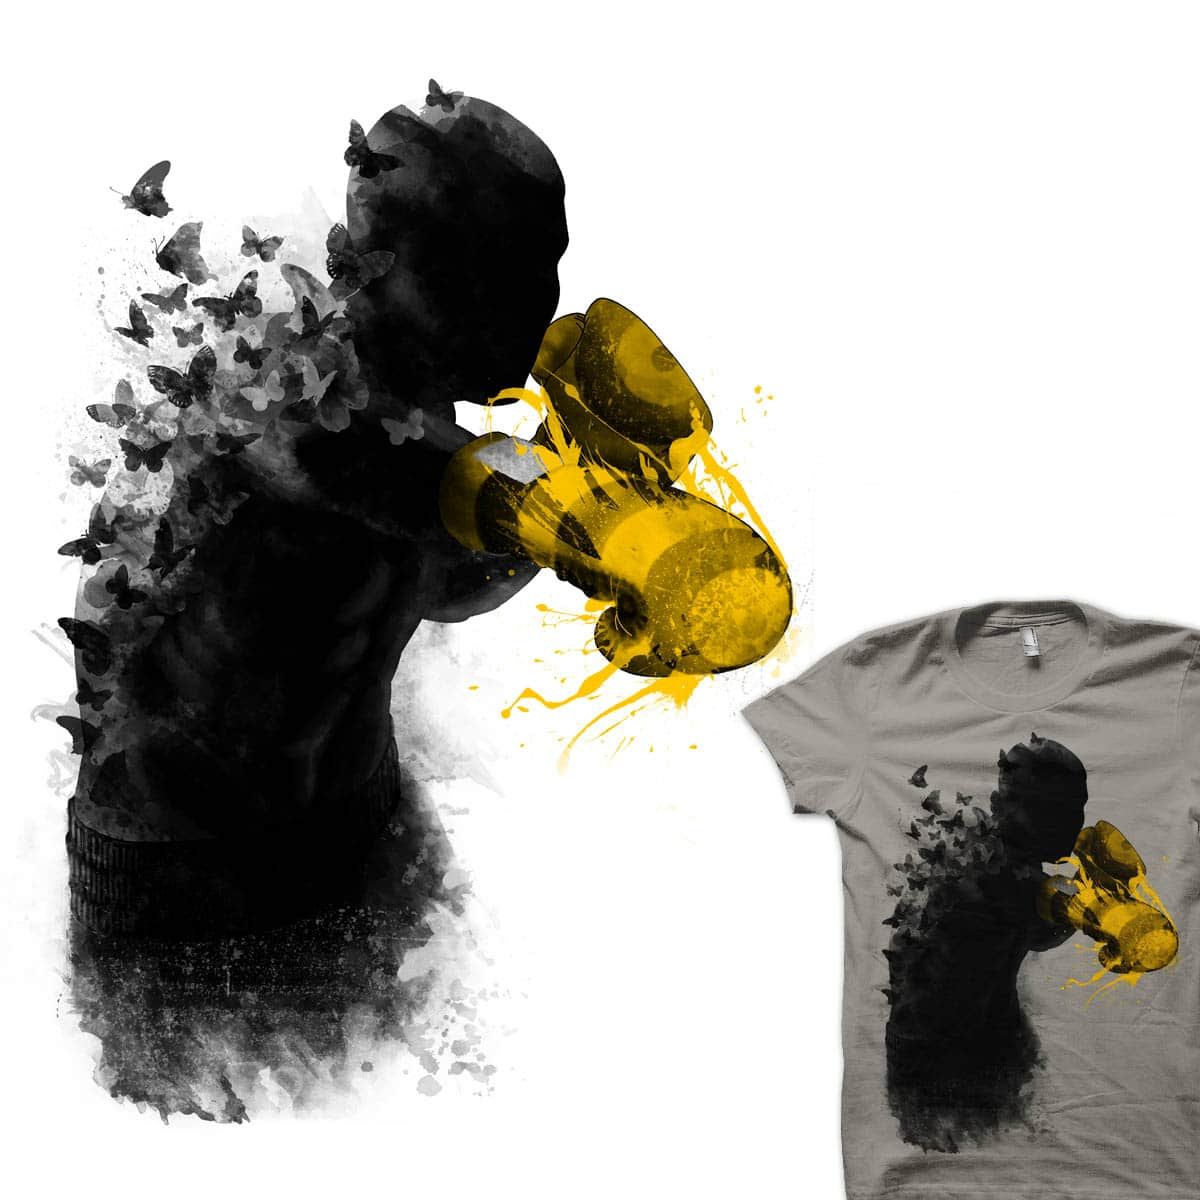 floating like a butterfly, sting like a bee by rejagalu on Threadless